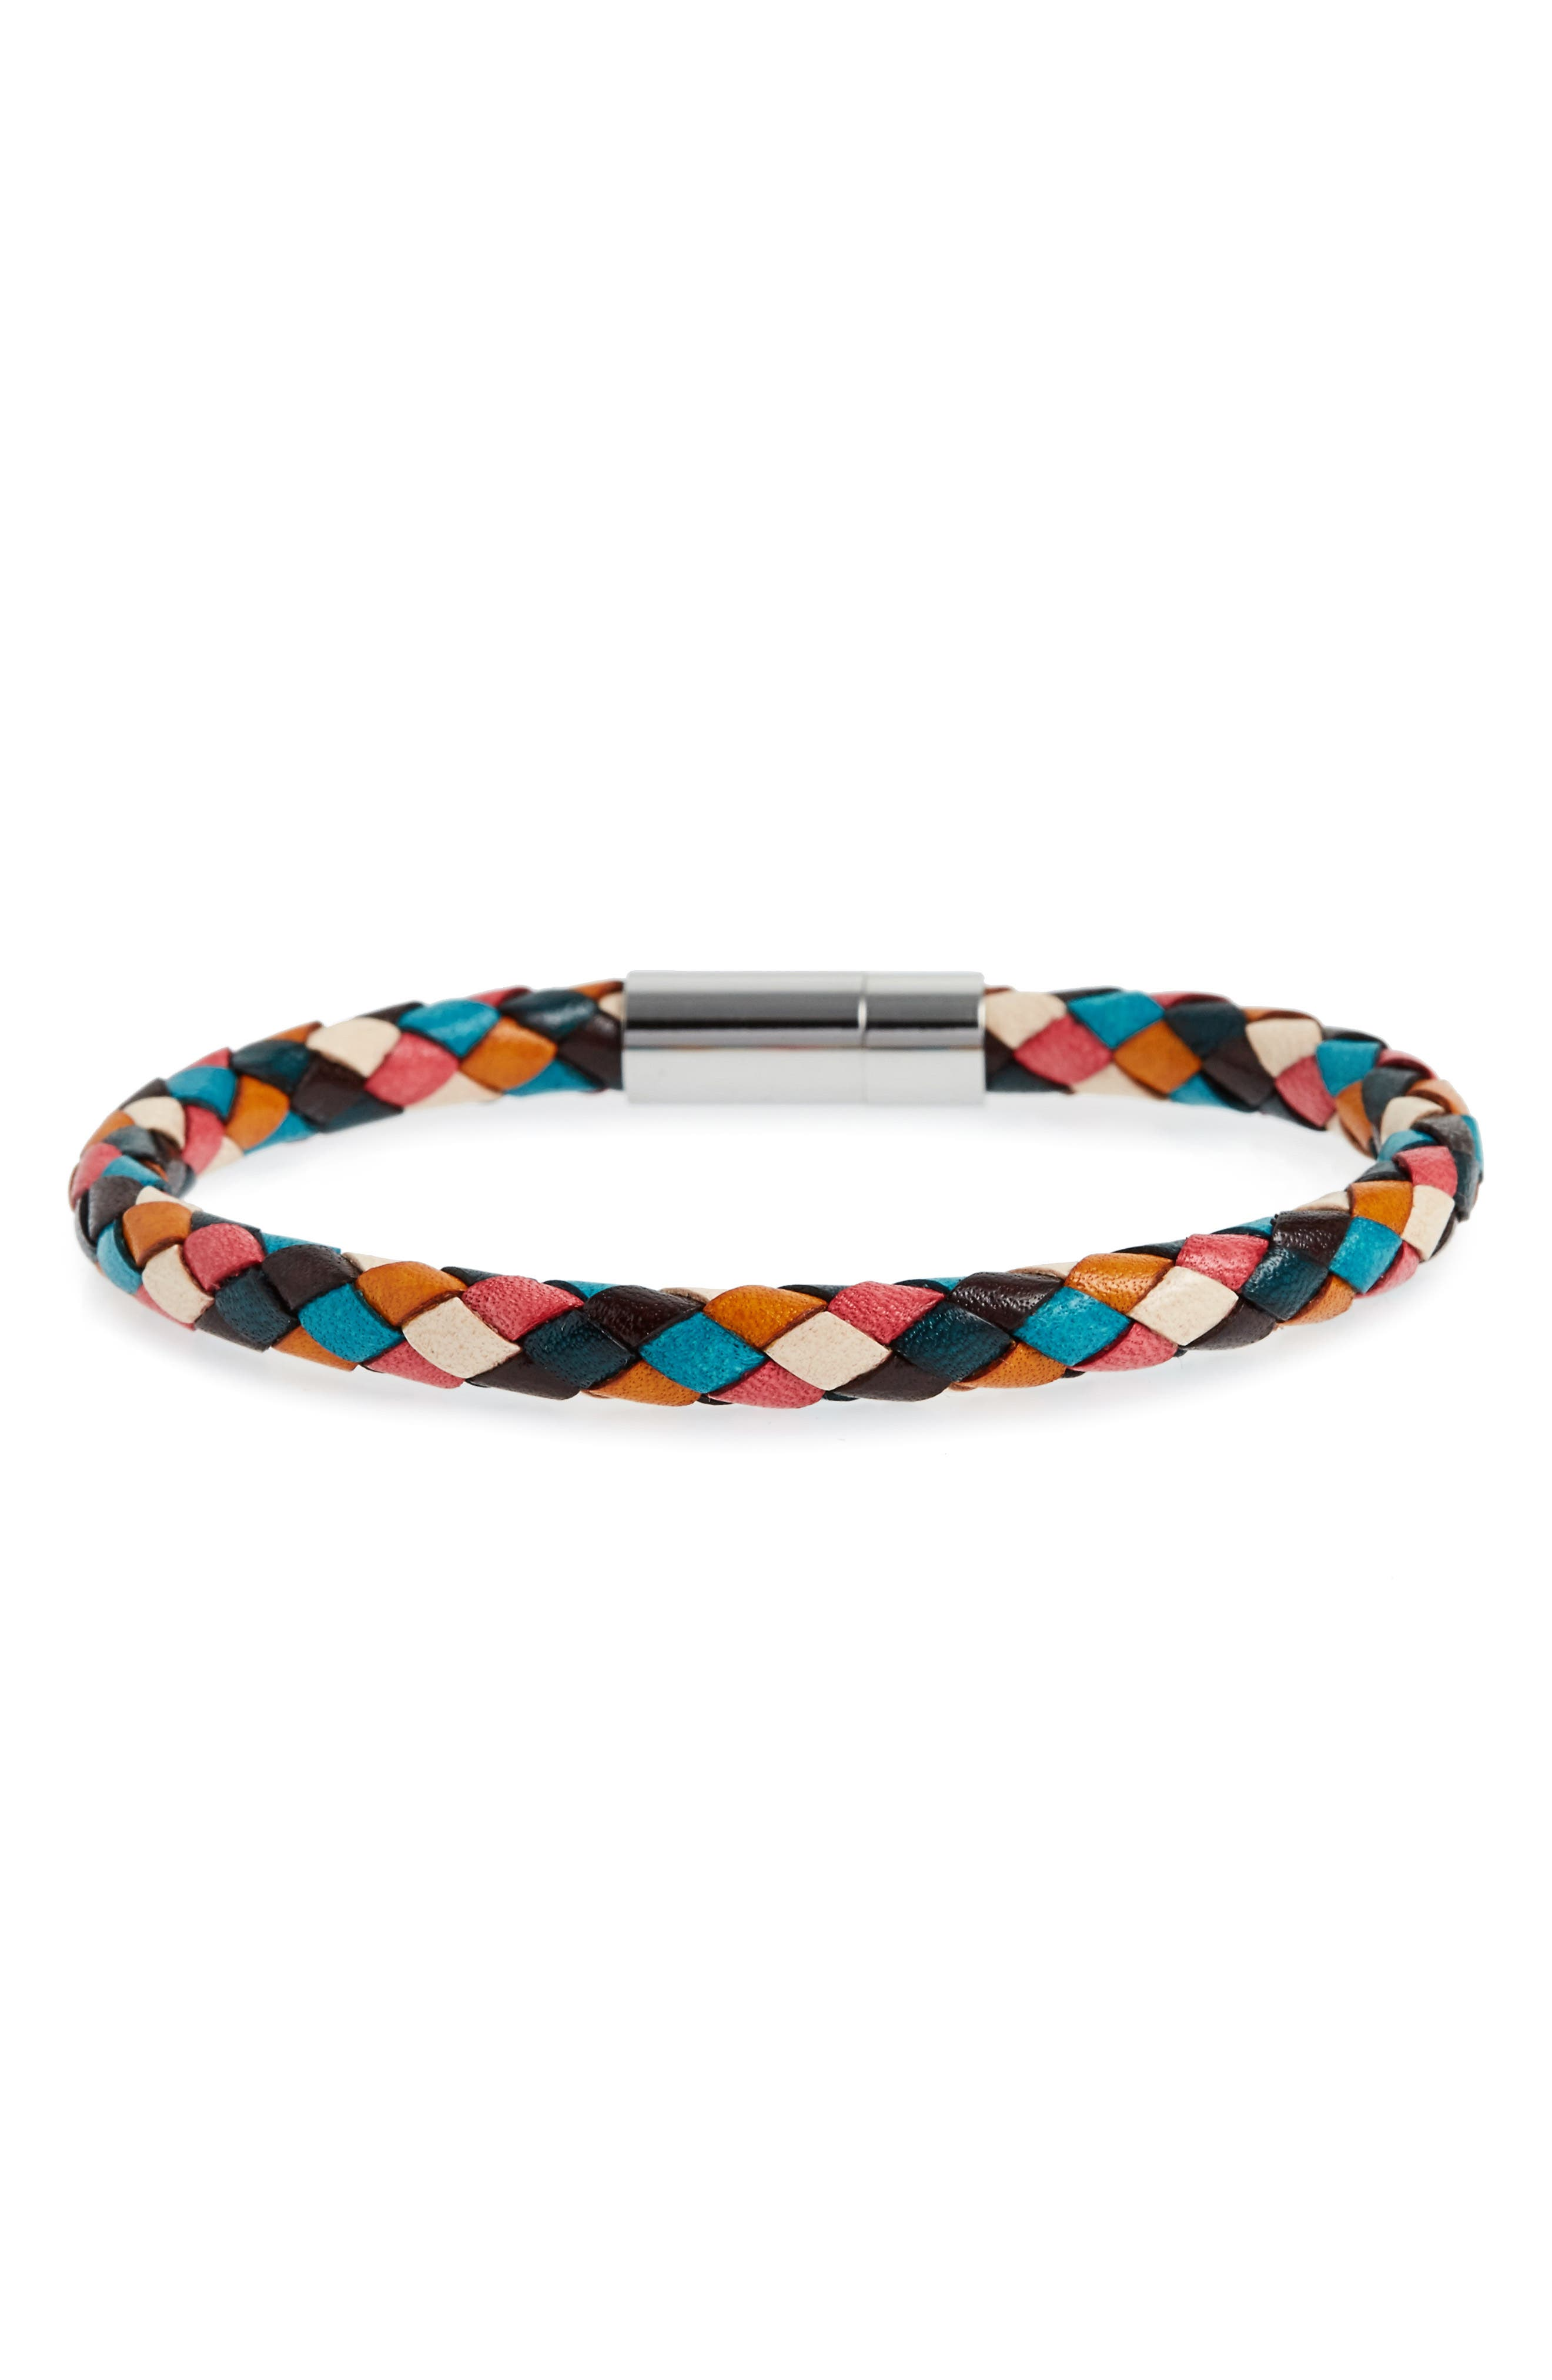 Paul Smith Woven Leather Bracelet